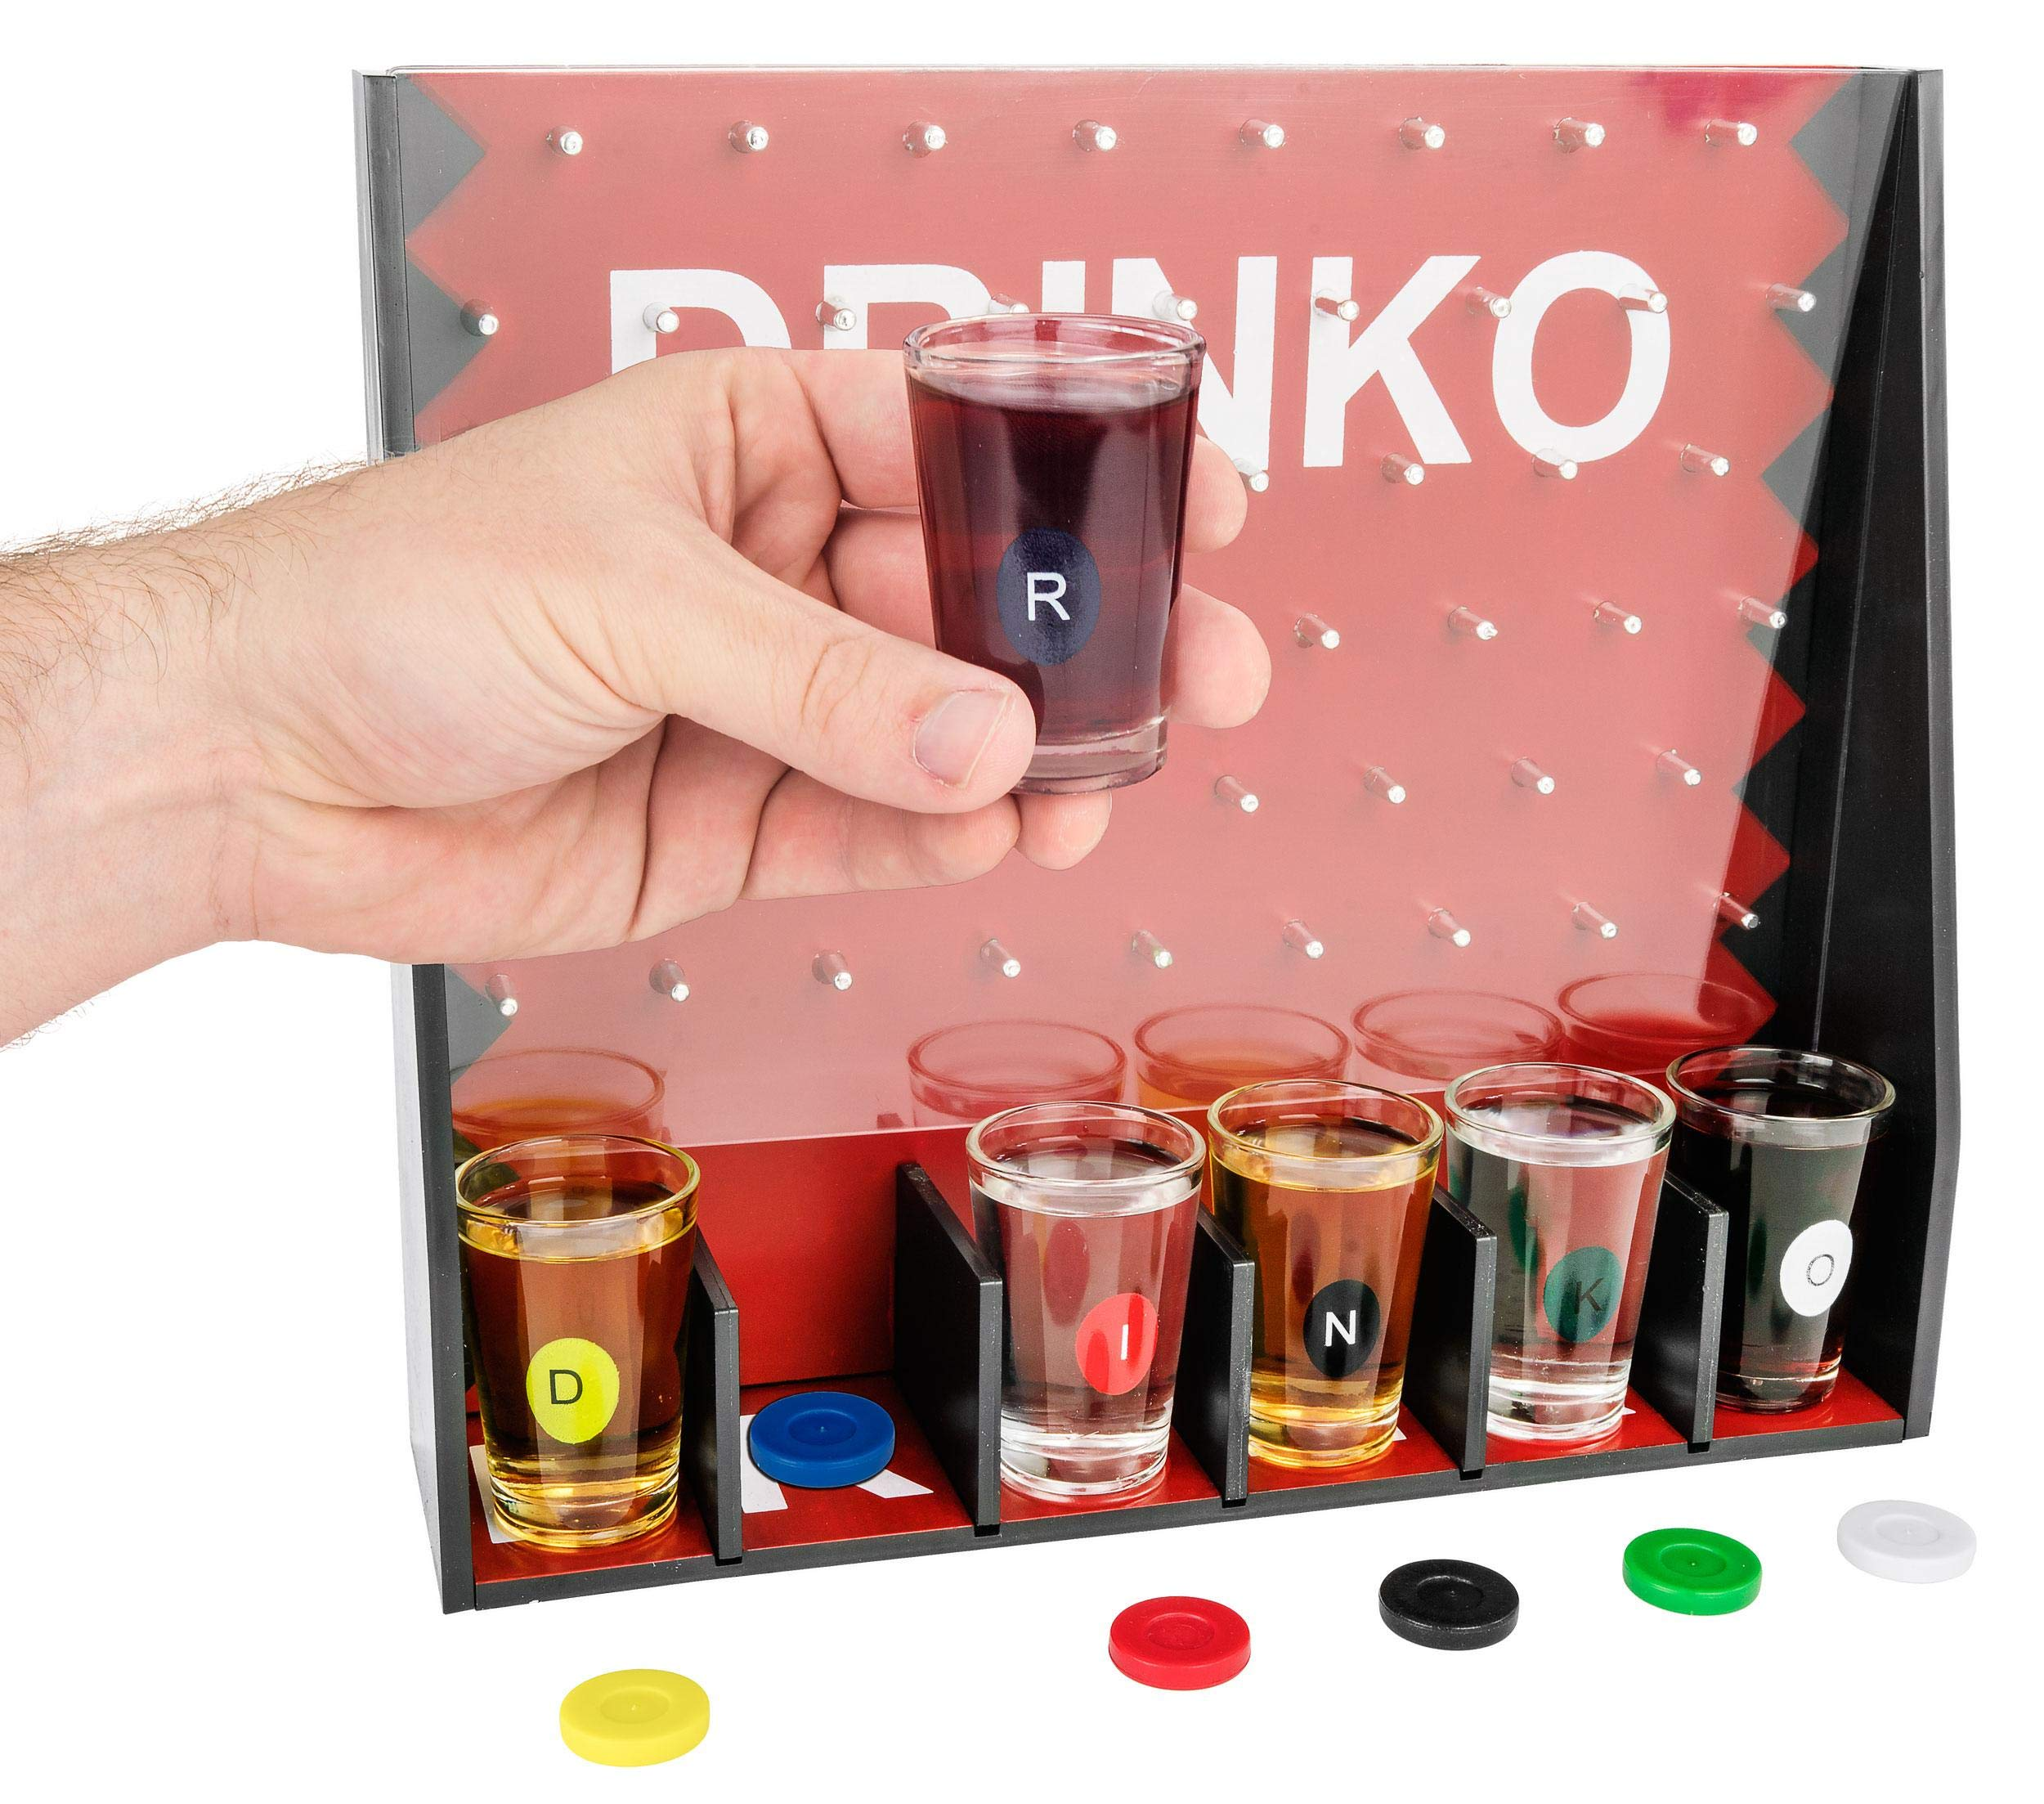 DRINKO Drinking Game - Fairly Odd Novelties - Fun Social Shot Glass Party Game for Groups / Couples by Fairly Odd Novelties (Image #2)